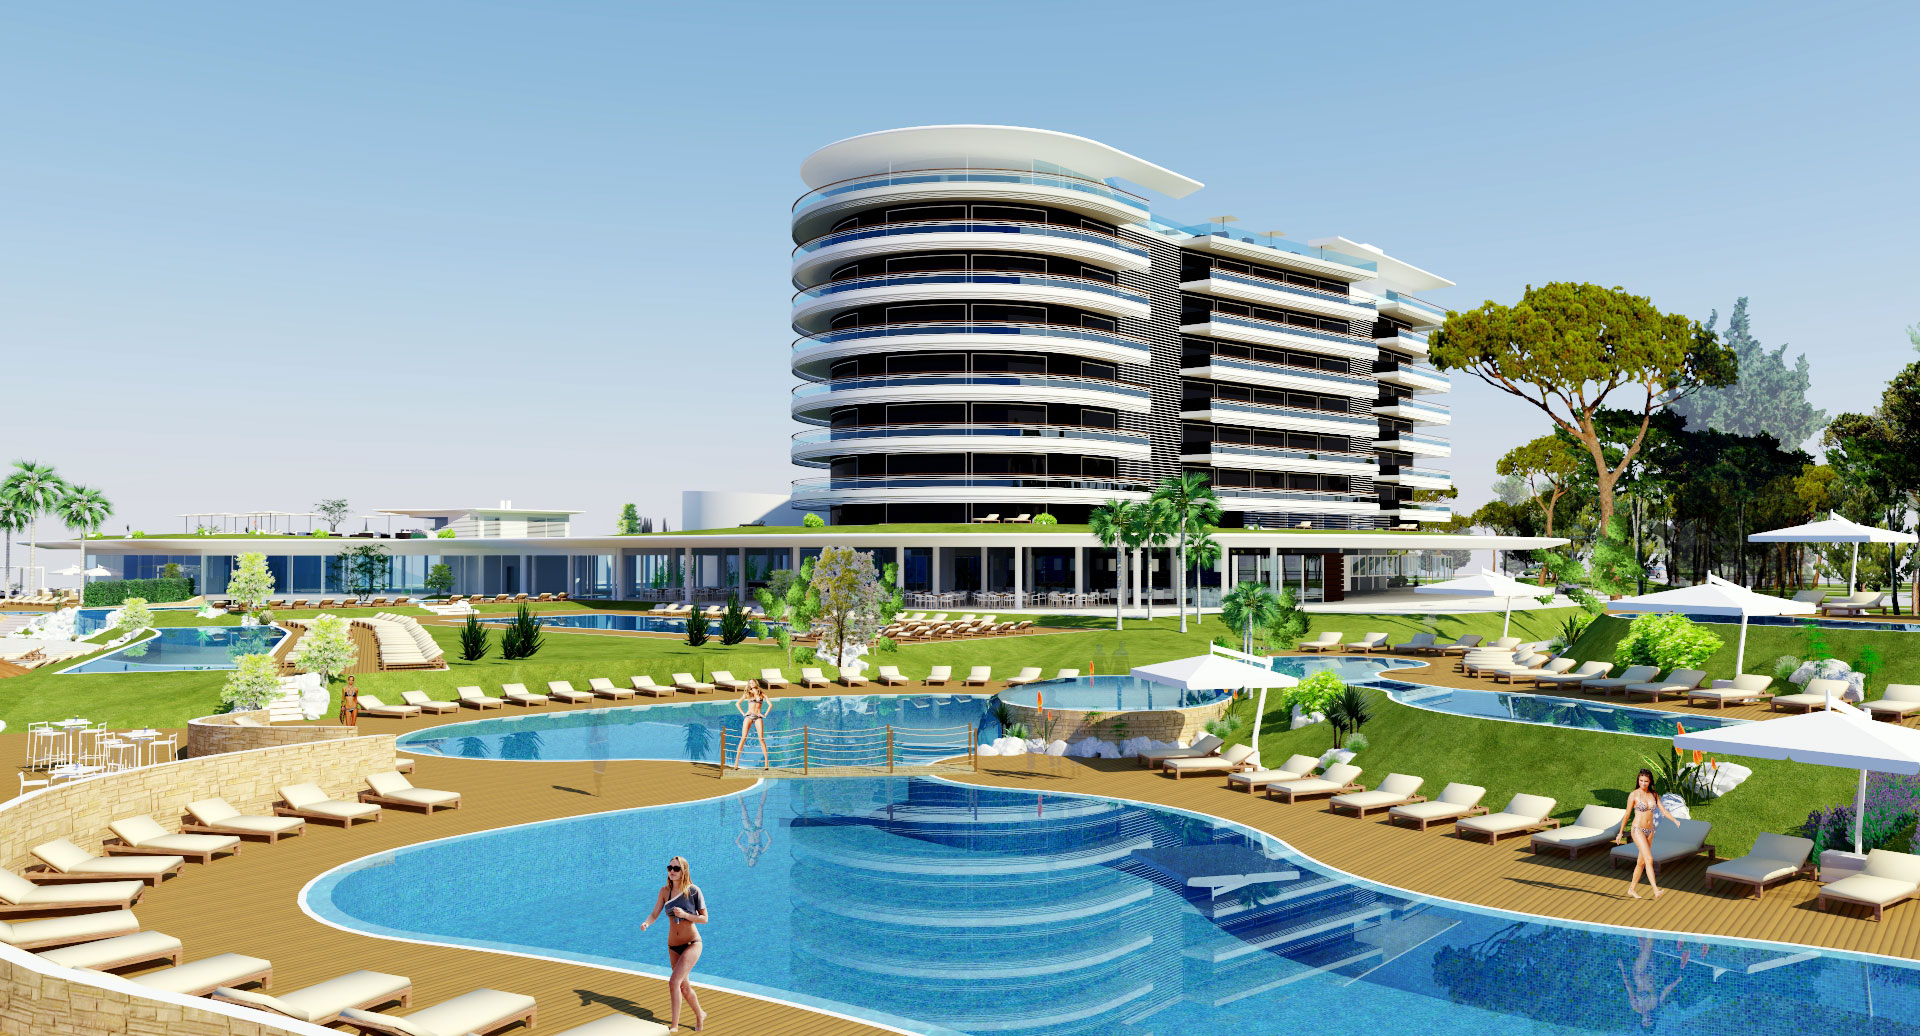 beach and wellness resort on the Adriatic coast